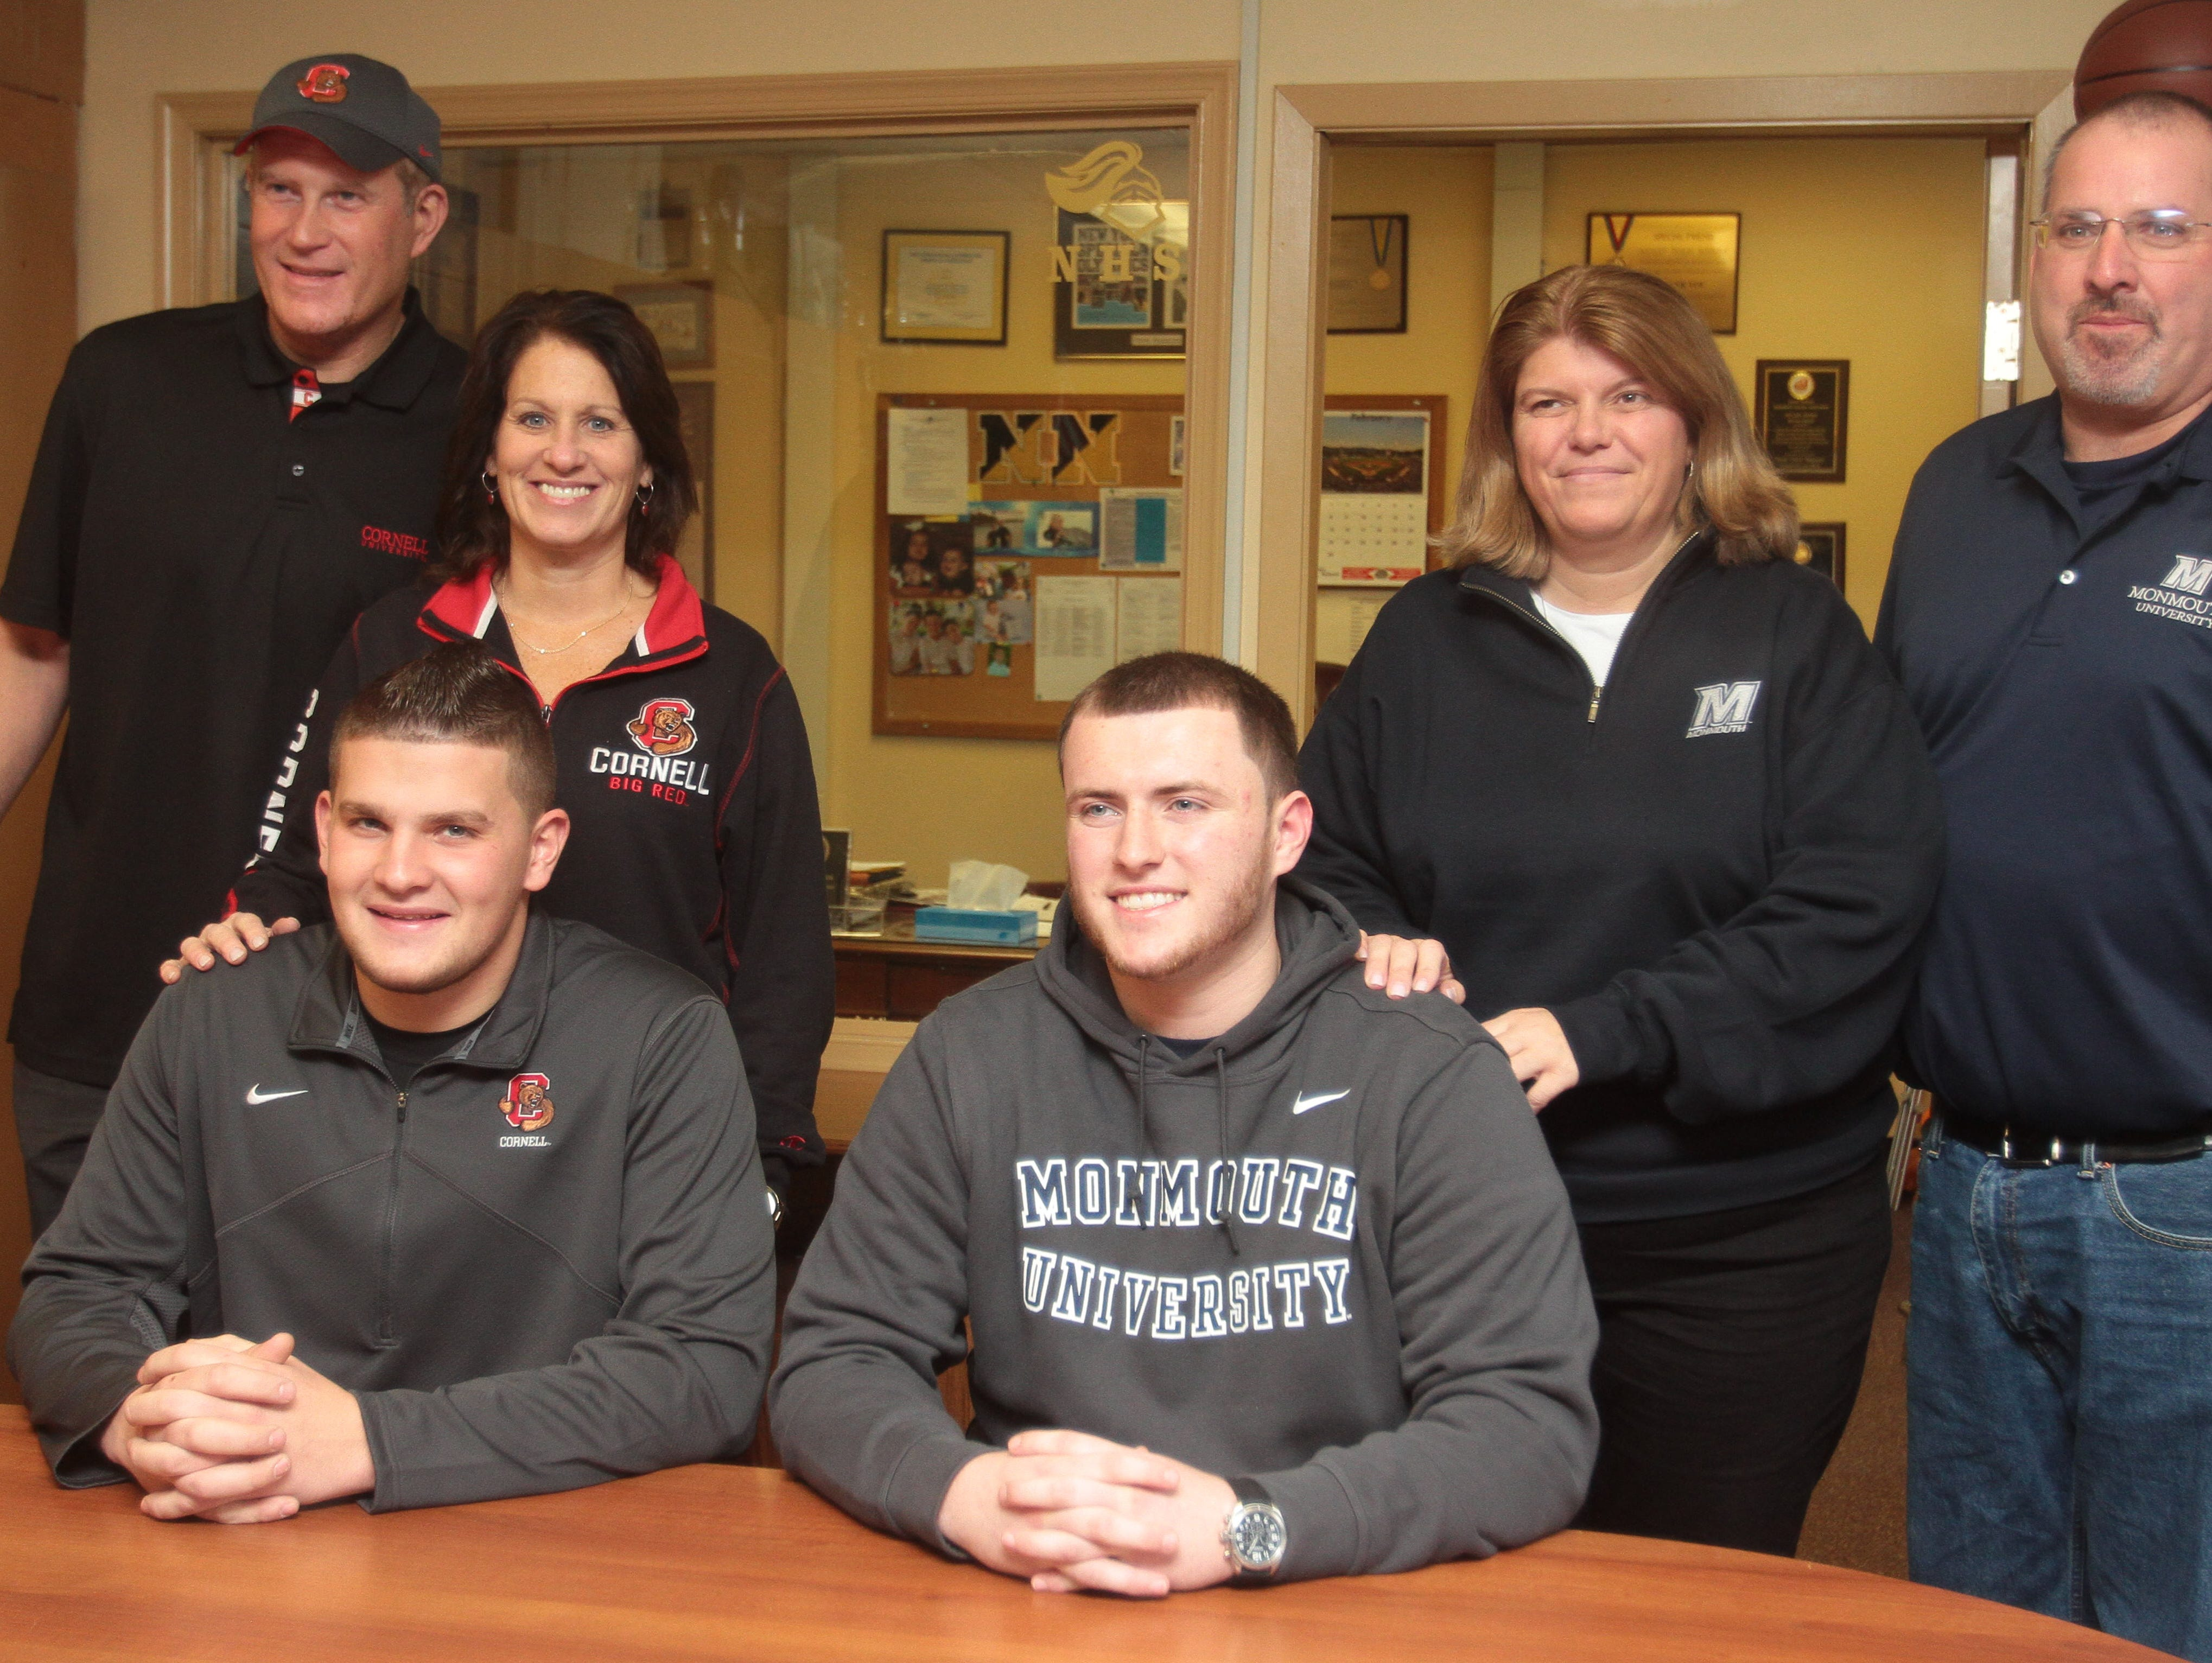 Jordan Landsman (front left) and Brian Syracuse (front right) with their parents on National Signing Day Feb. 3, 2016 at Nanuet Senior High School.